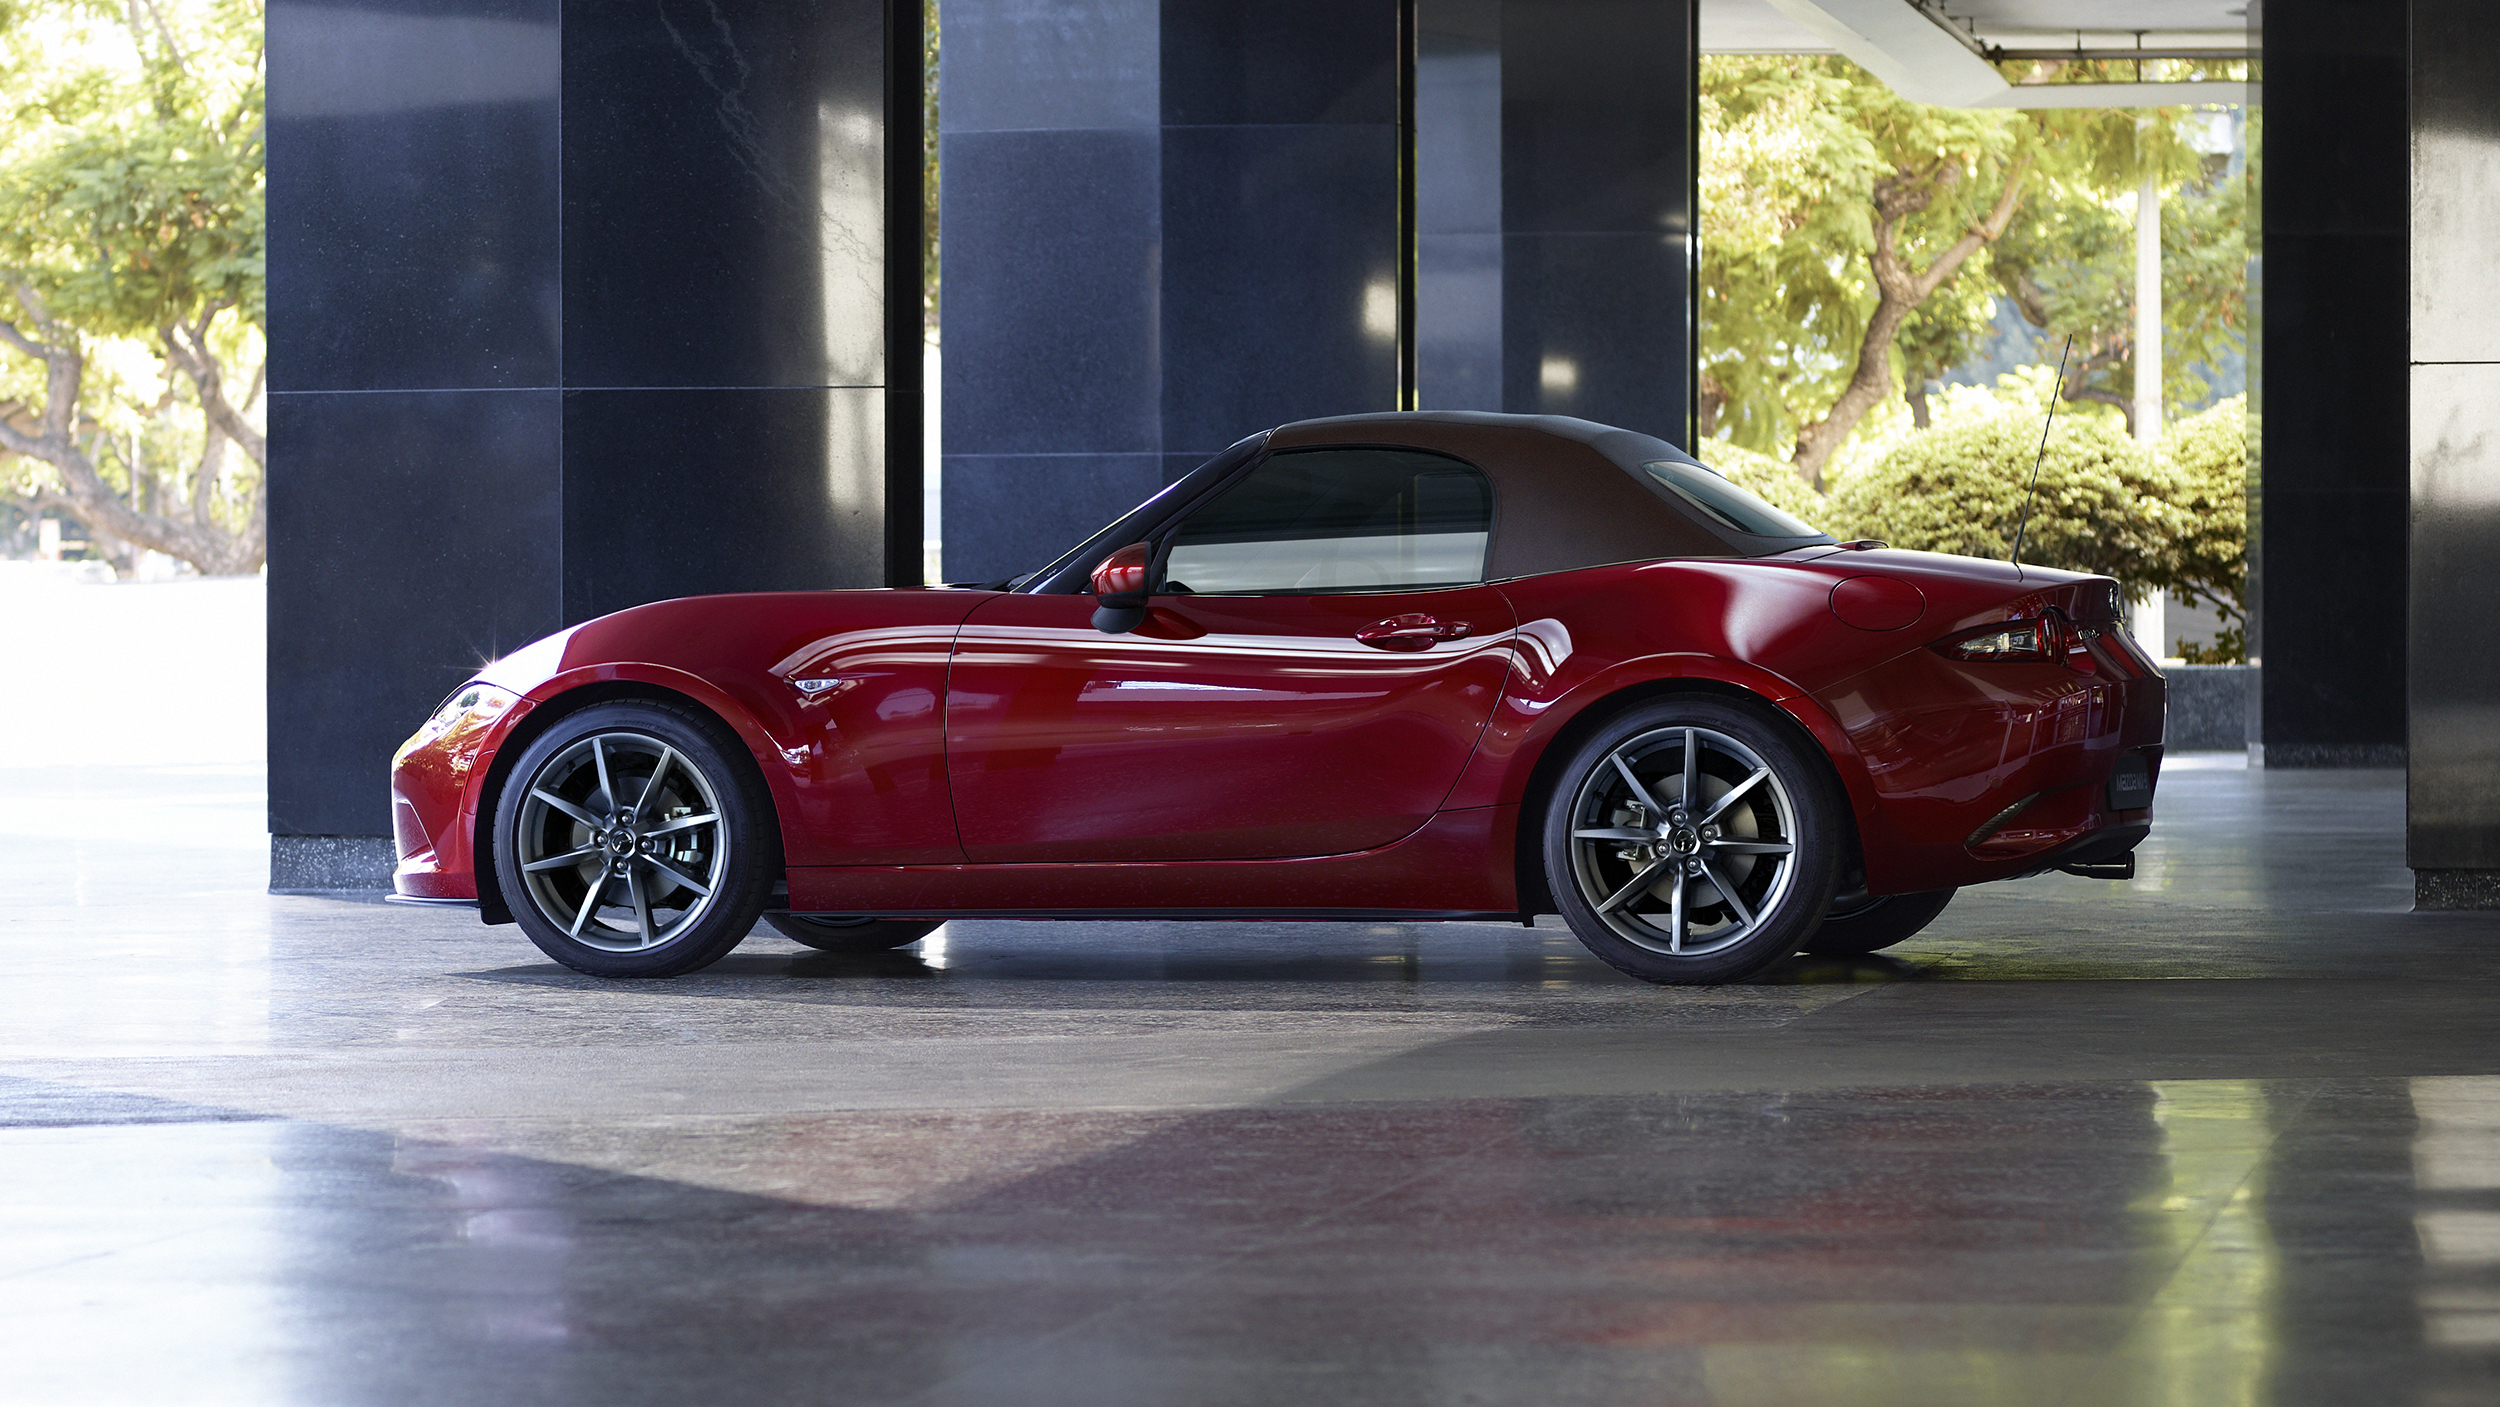 https://www.topgear.com/sites/default/files/images/news-article/2018/06/104fa95cdc39c0eea79aa46f6e6eacbc/mazda_mx-5_brown_soft_top_ger_side.jpg